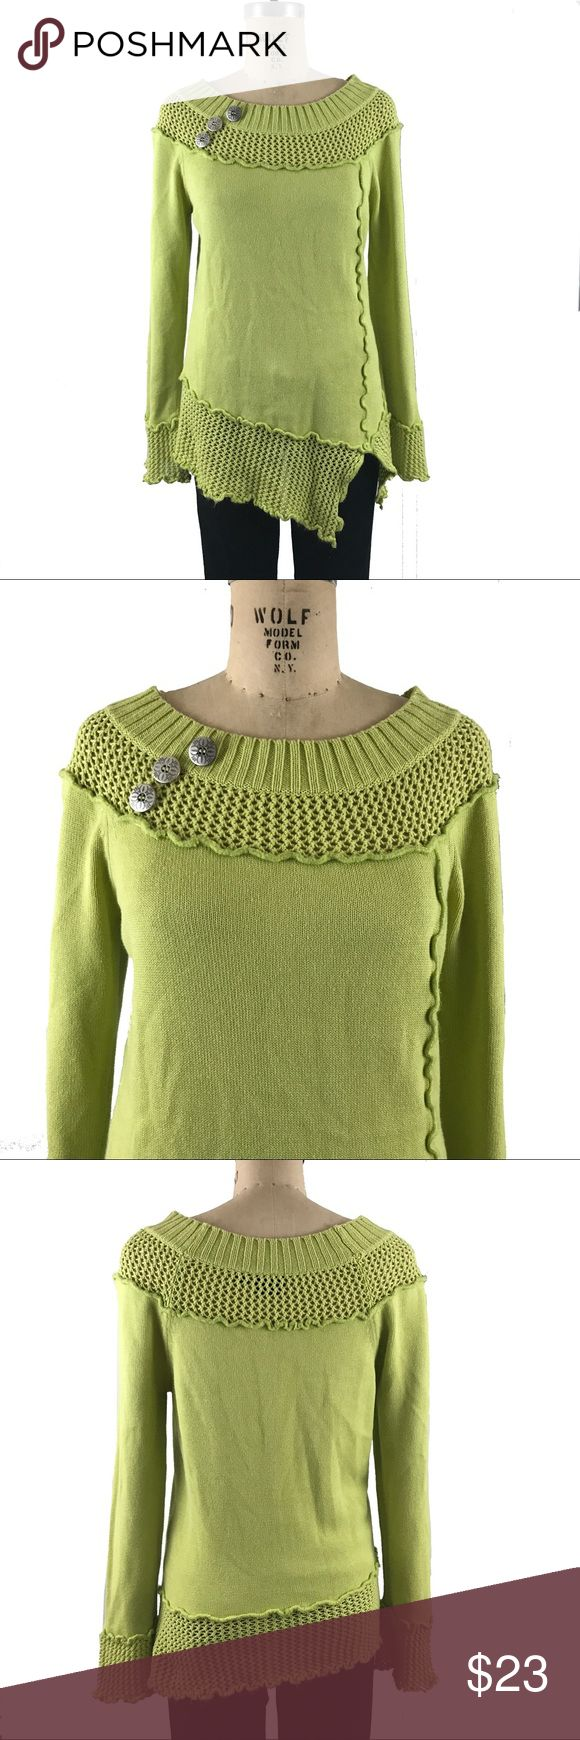 "Tribal Pure Cotton asymmetrical hem sweater green Tribal Pure Cotton asymmetrical hem sweater green. Very good condition with interesting button detail. Reversed seams. measurements: bust: 20.75 sleeve length from shoulder: 25.5 length: 30"" Tribal Sweaters"